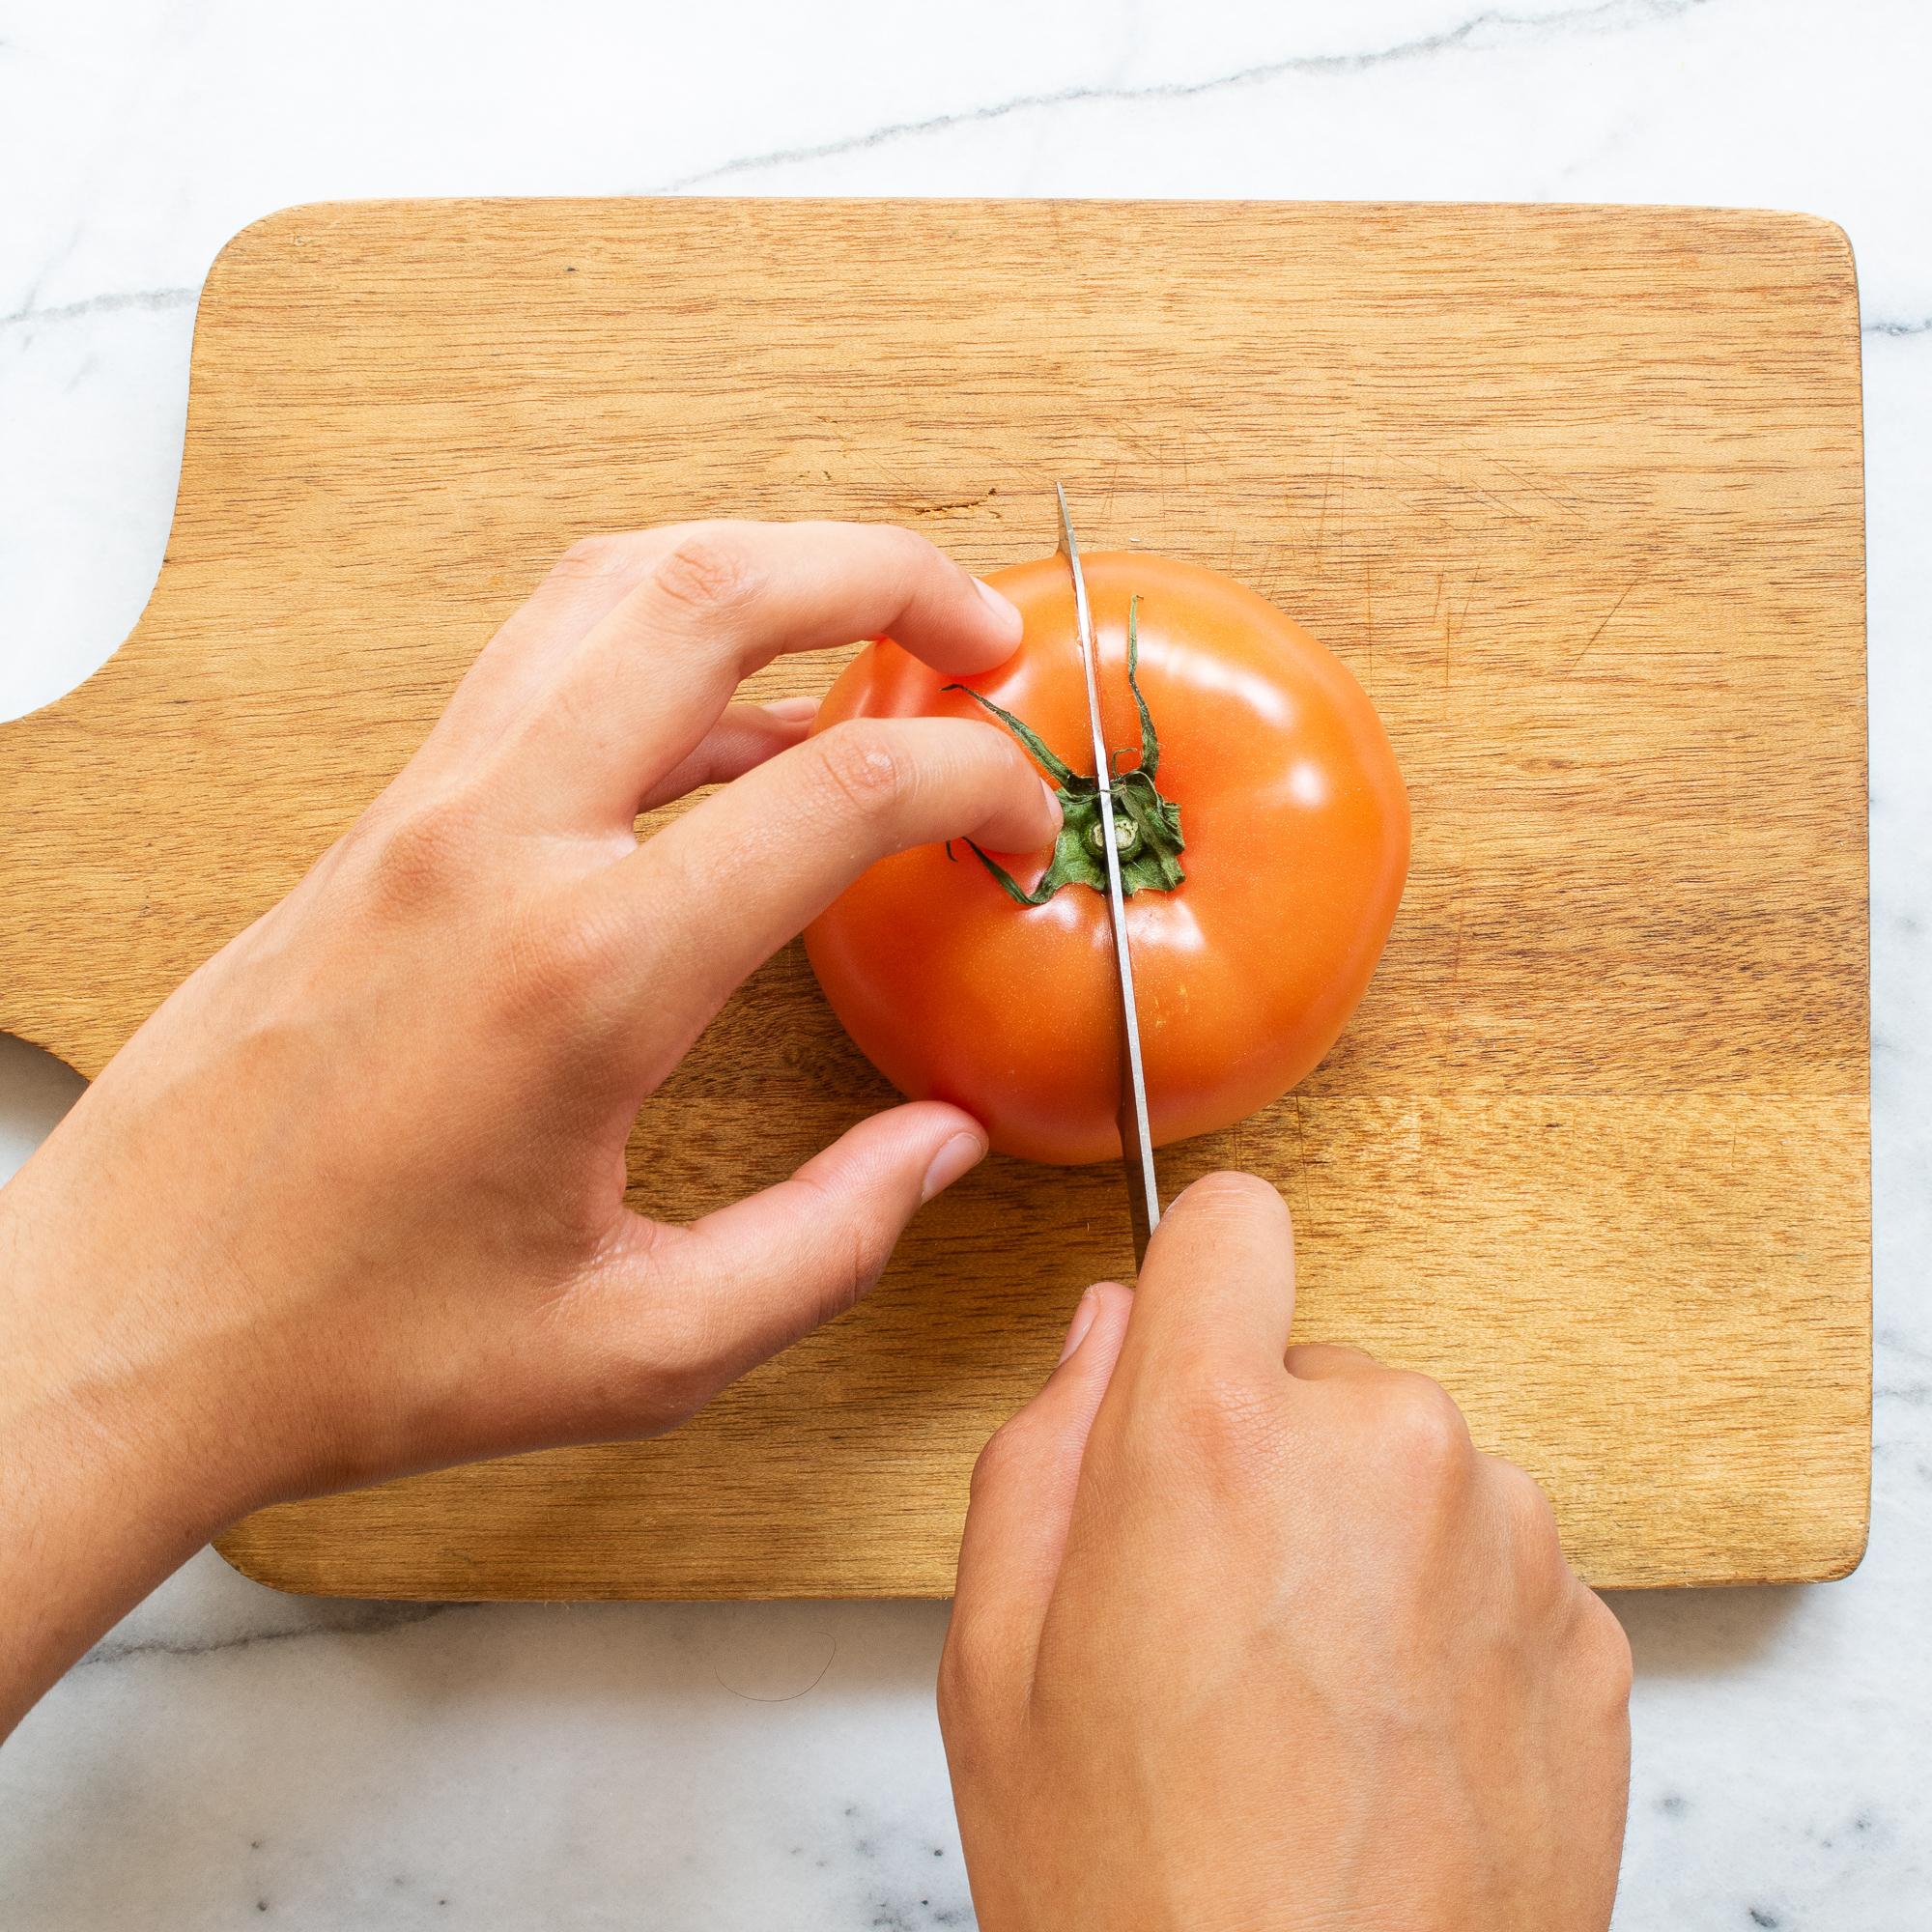 hands using a knife to cut a tomato into wedges on a wood cutting board